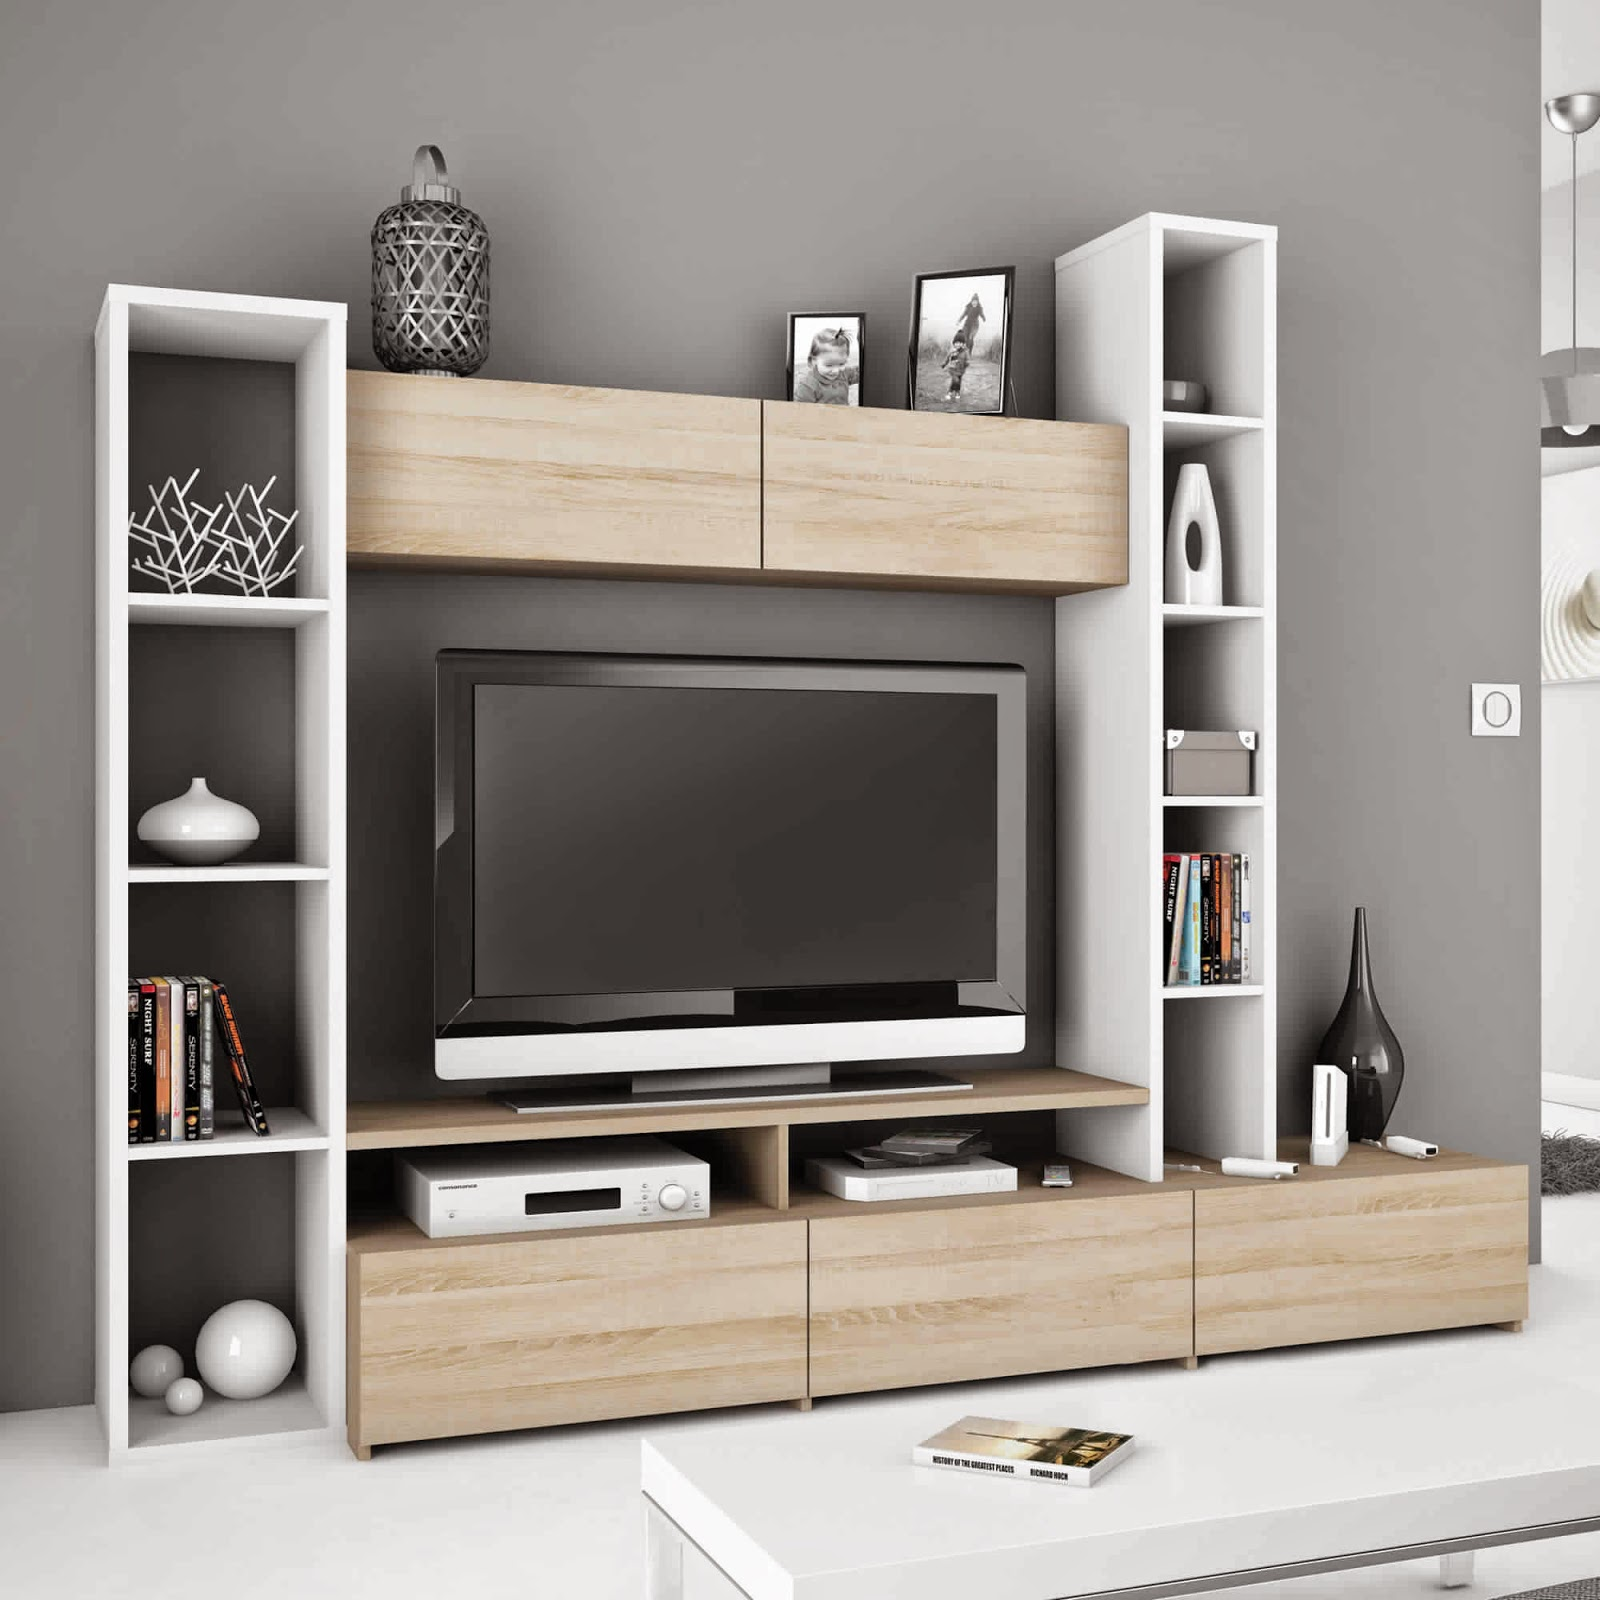 meuble tv rangement pas cher id es de d coration. Black Bedroom Furniture Sets. Home Design Ideas